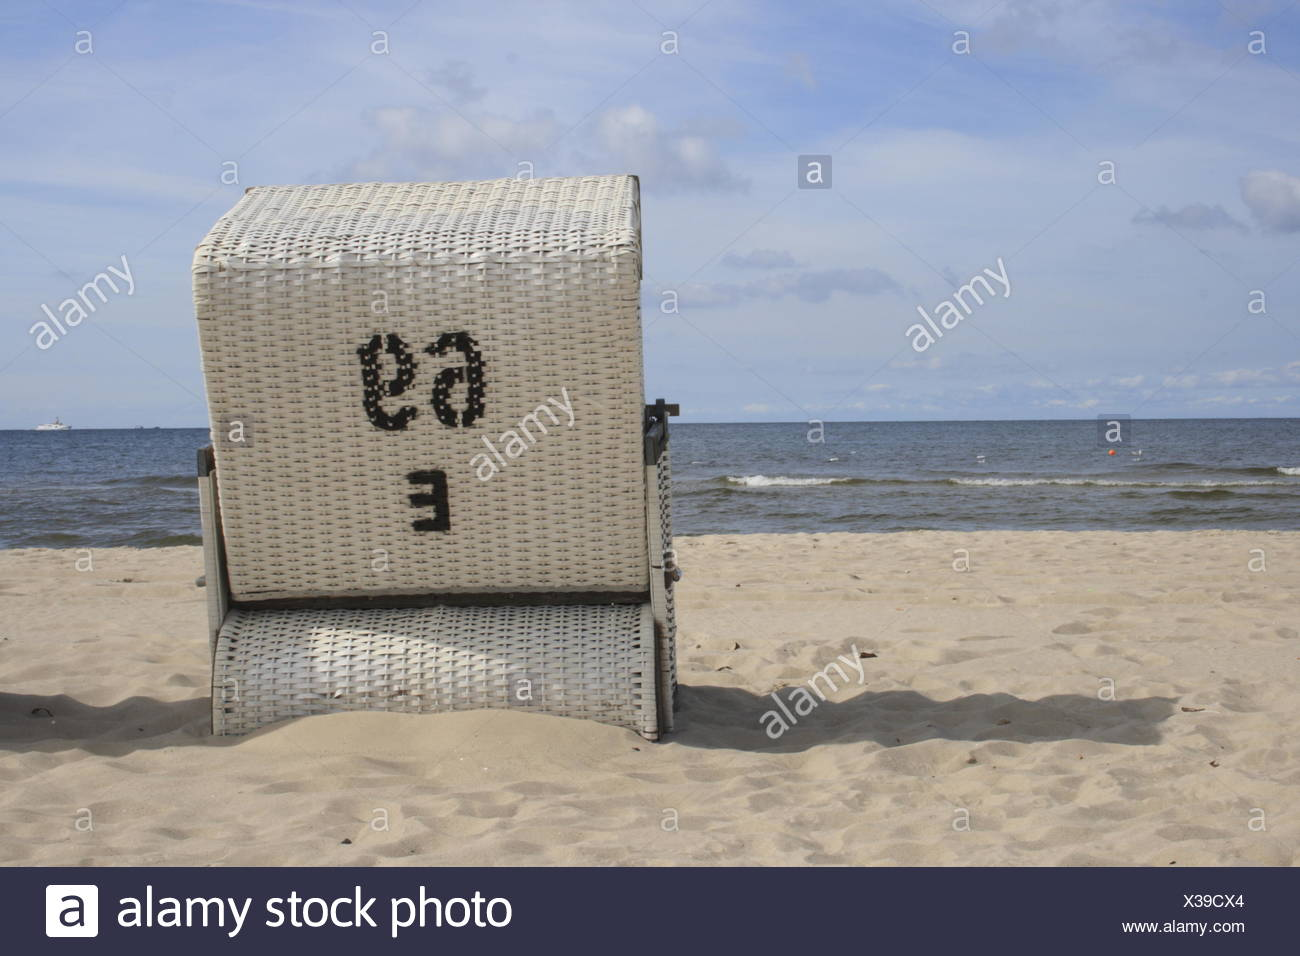 beach chair at the beach of Usedom, Baltic Sea - Stock Image